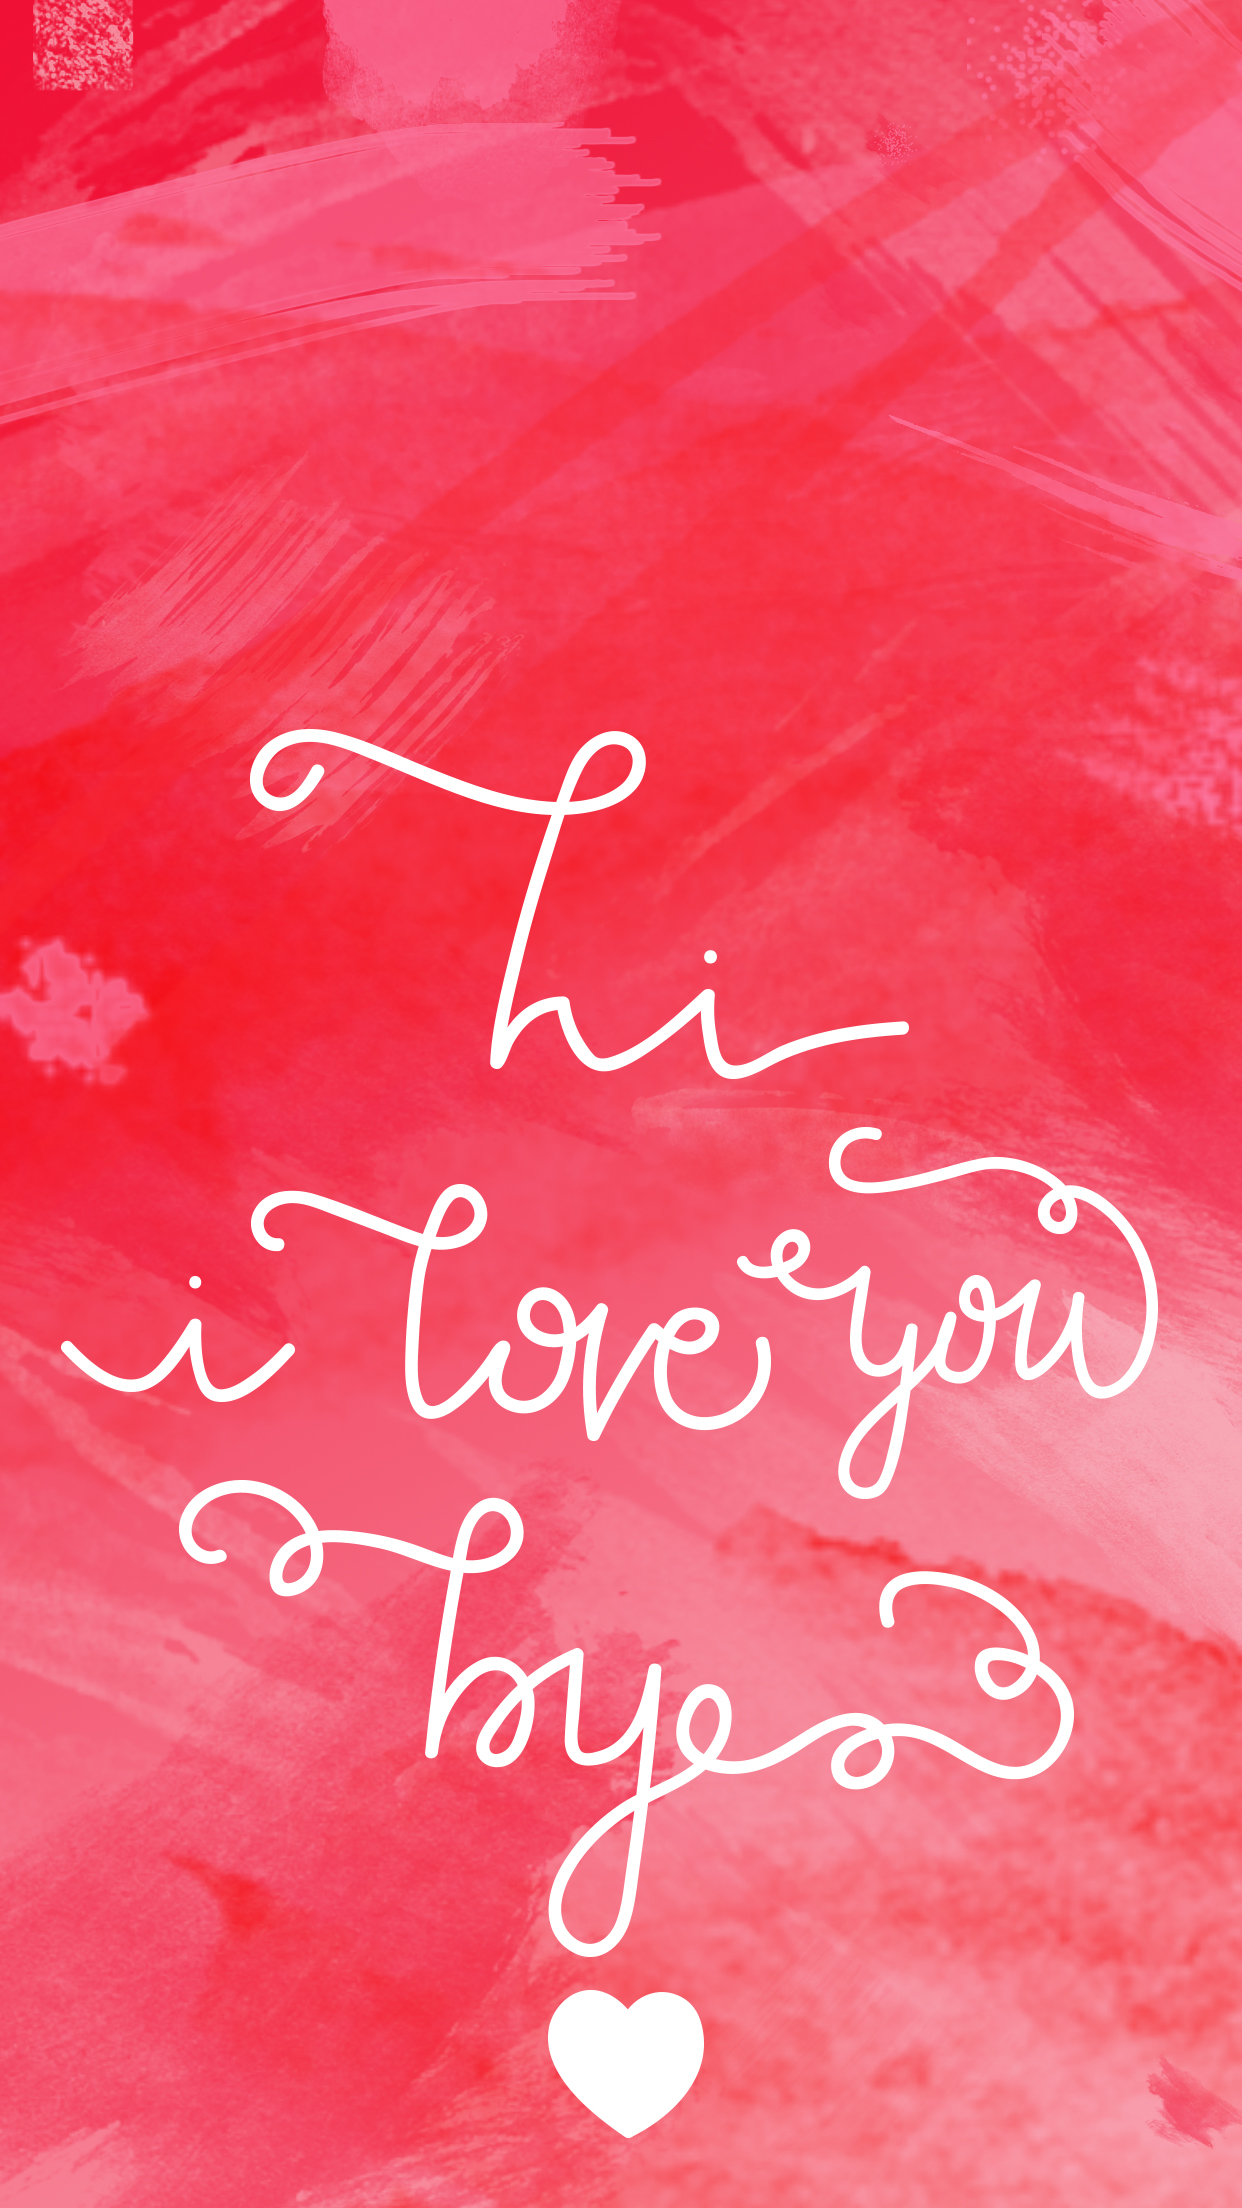 Free Download Valentine S Day Themed Iphone Background Finding